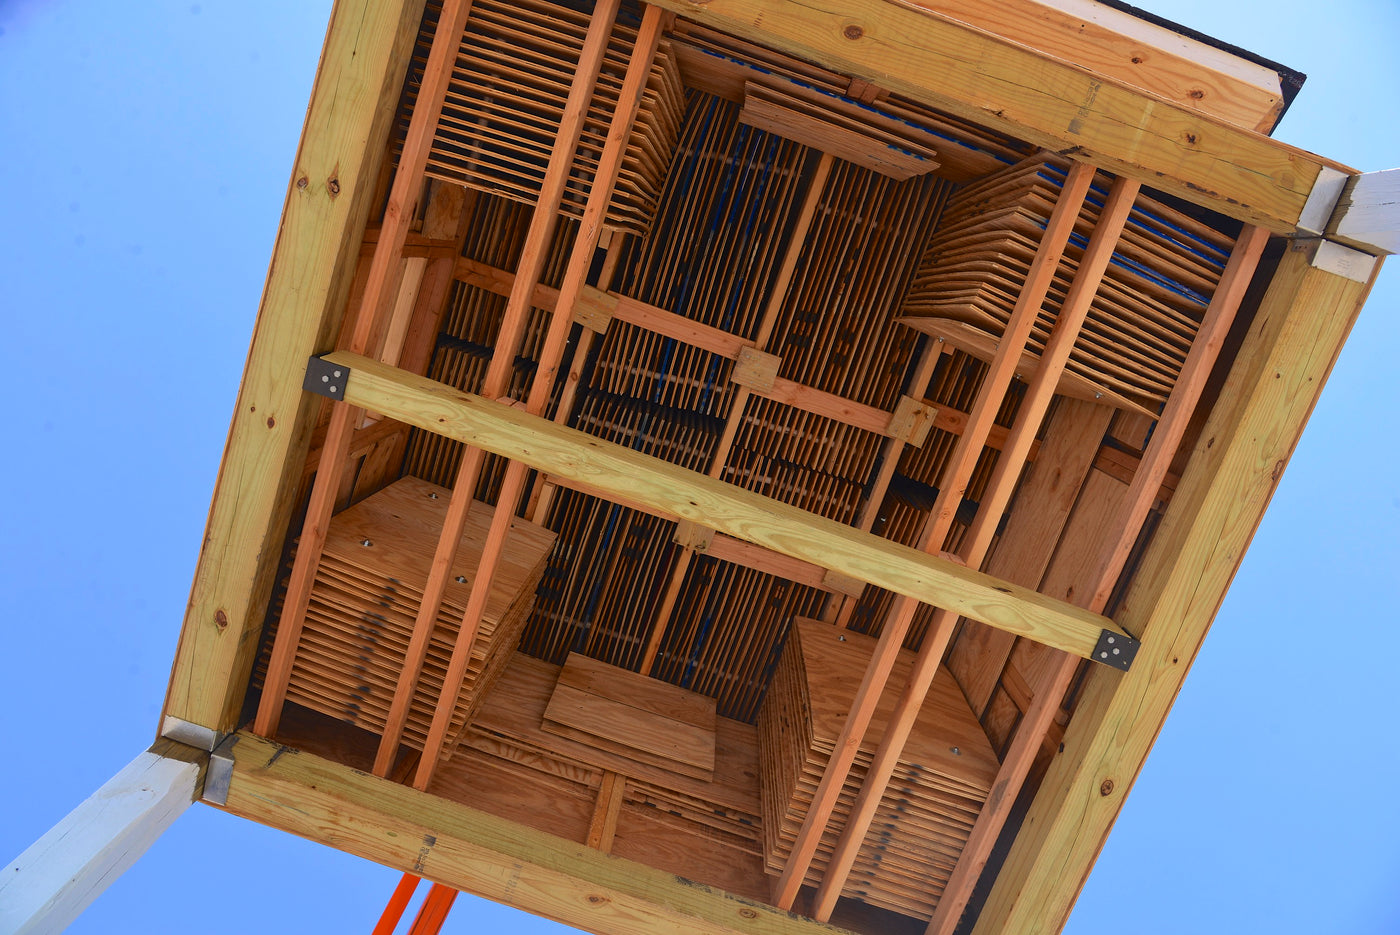 BCM Bat Condo Ranch Bat House Plans Square Foot on